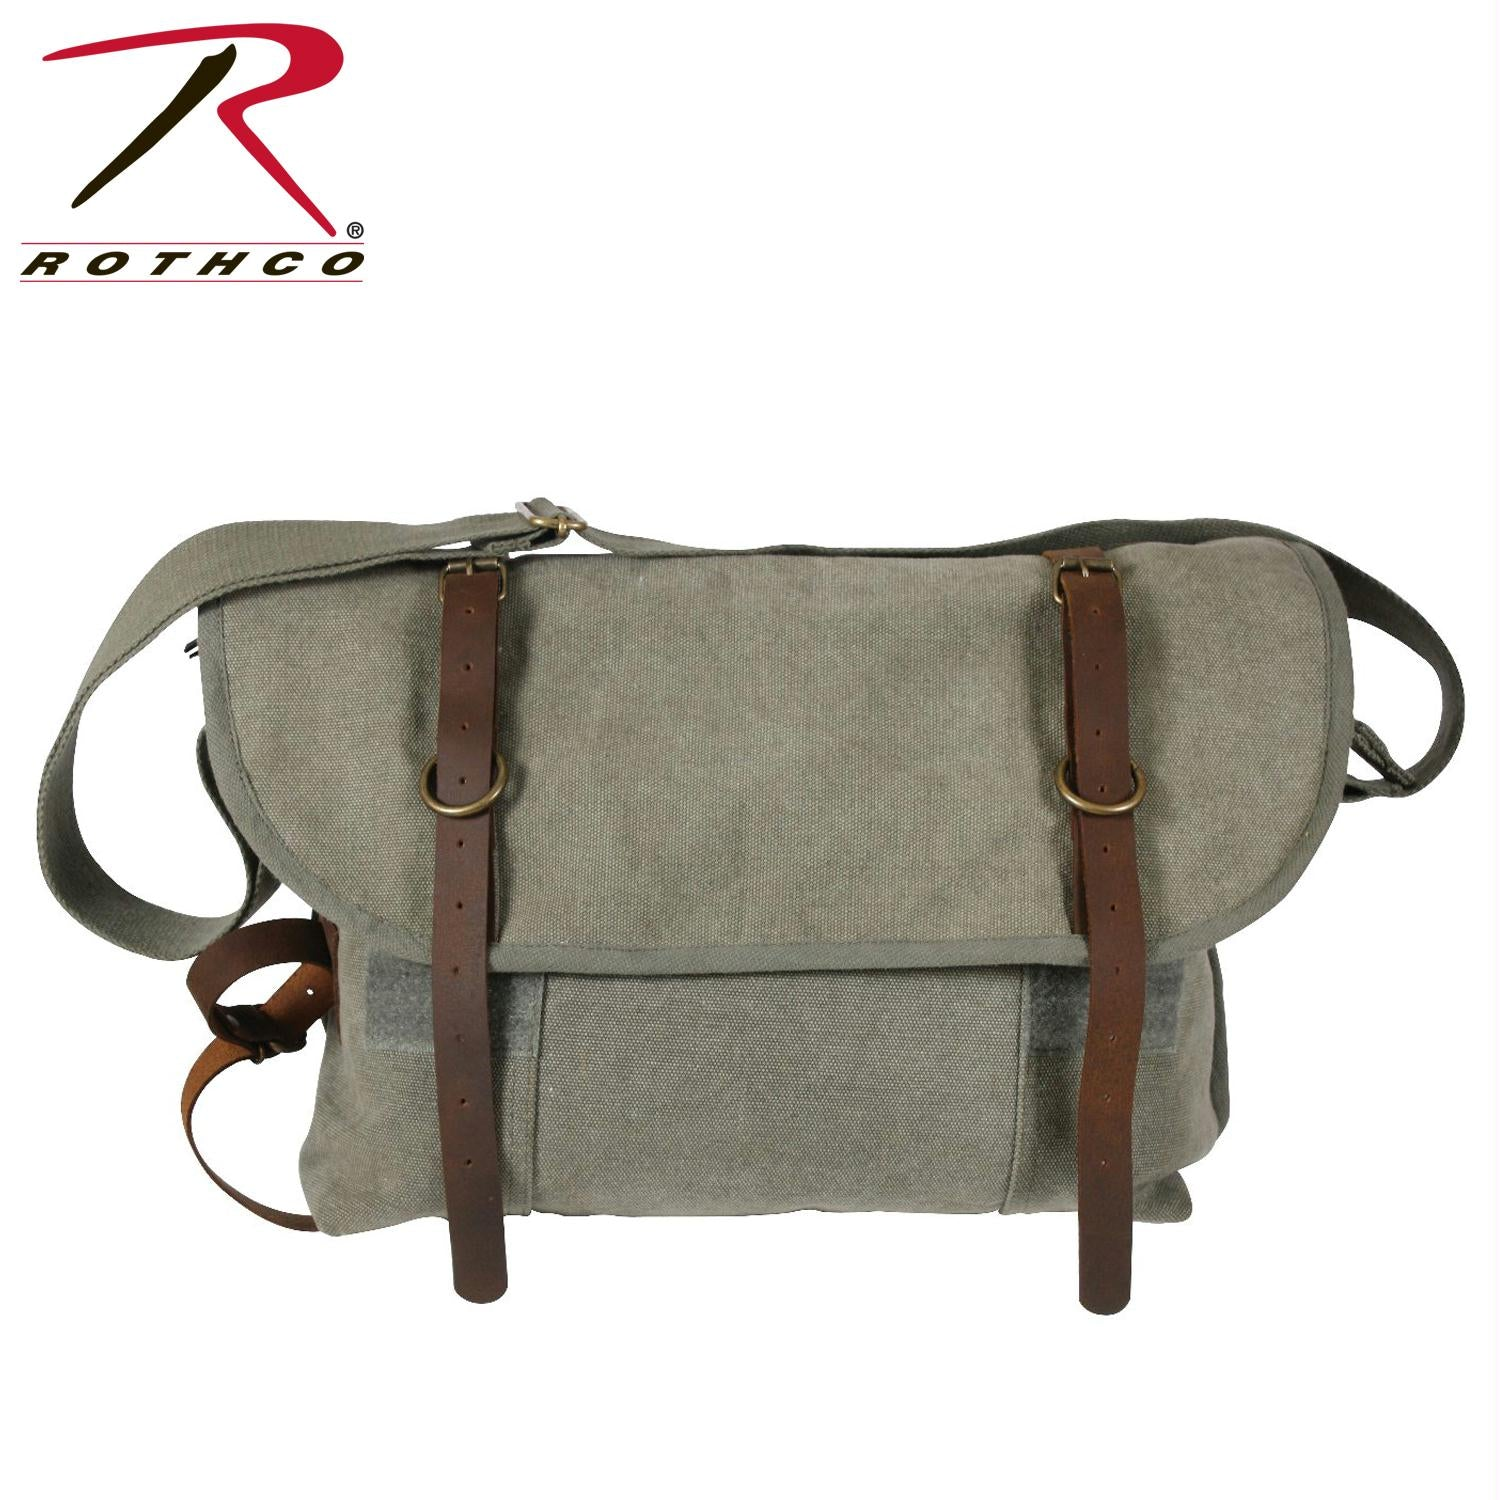 Rothco Vintage Canvas Explorer Shoulder Bag w/ Leather Accents - Olive Drab